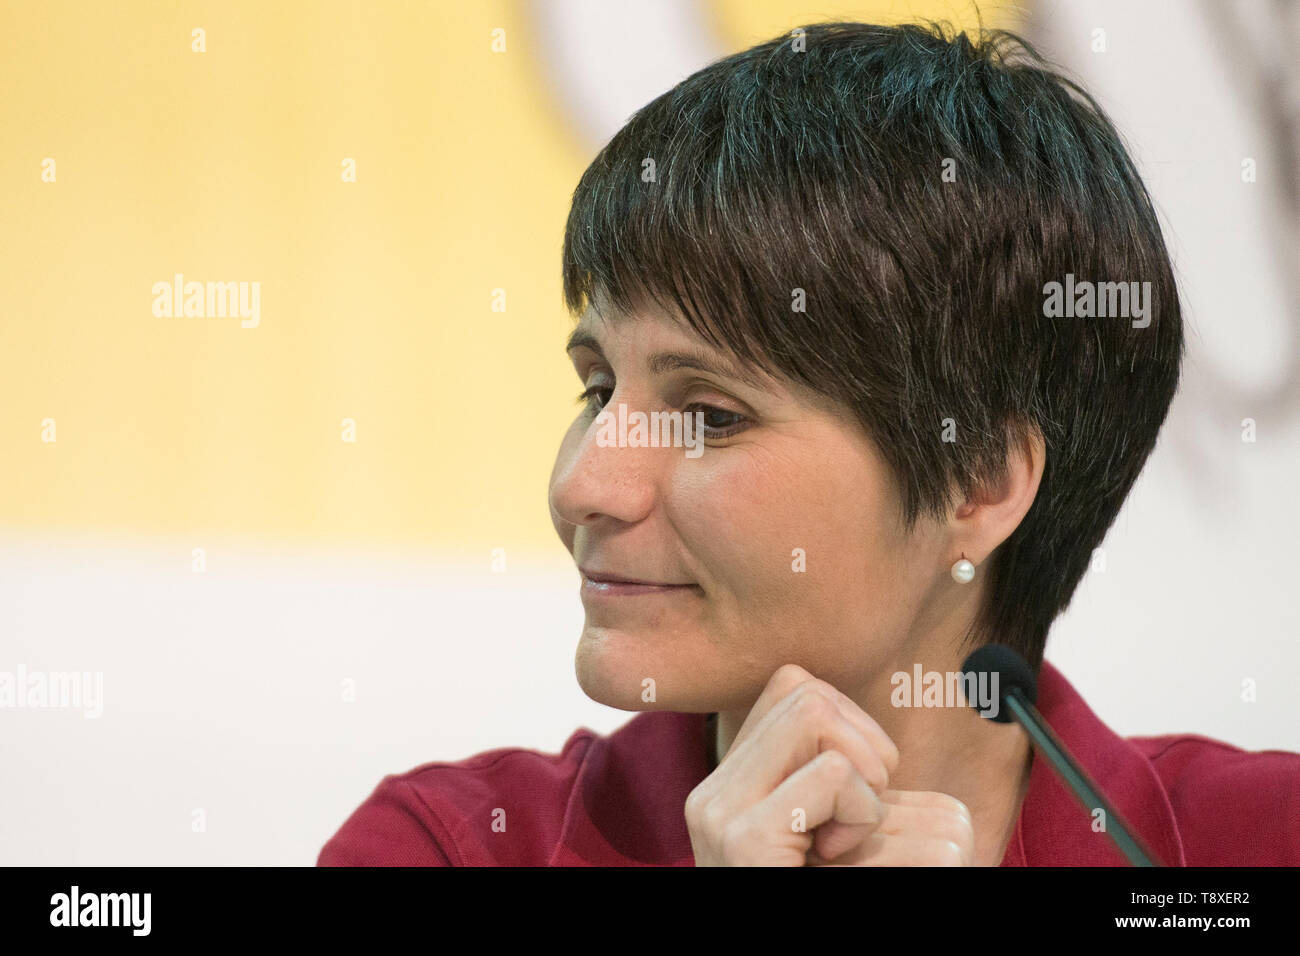 Turin, Piedmont, Italy. 9th May, 2019. Turin, Italy-May 9, 2019: Samantha Cristoforetti during the Inauguration of the Turin International Book Fair Credit: Stefano Guidi/ZUMA Wire/Alamy Live News - Stock Image